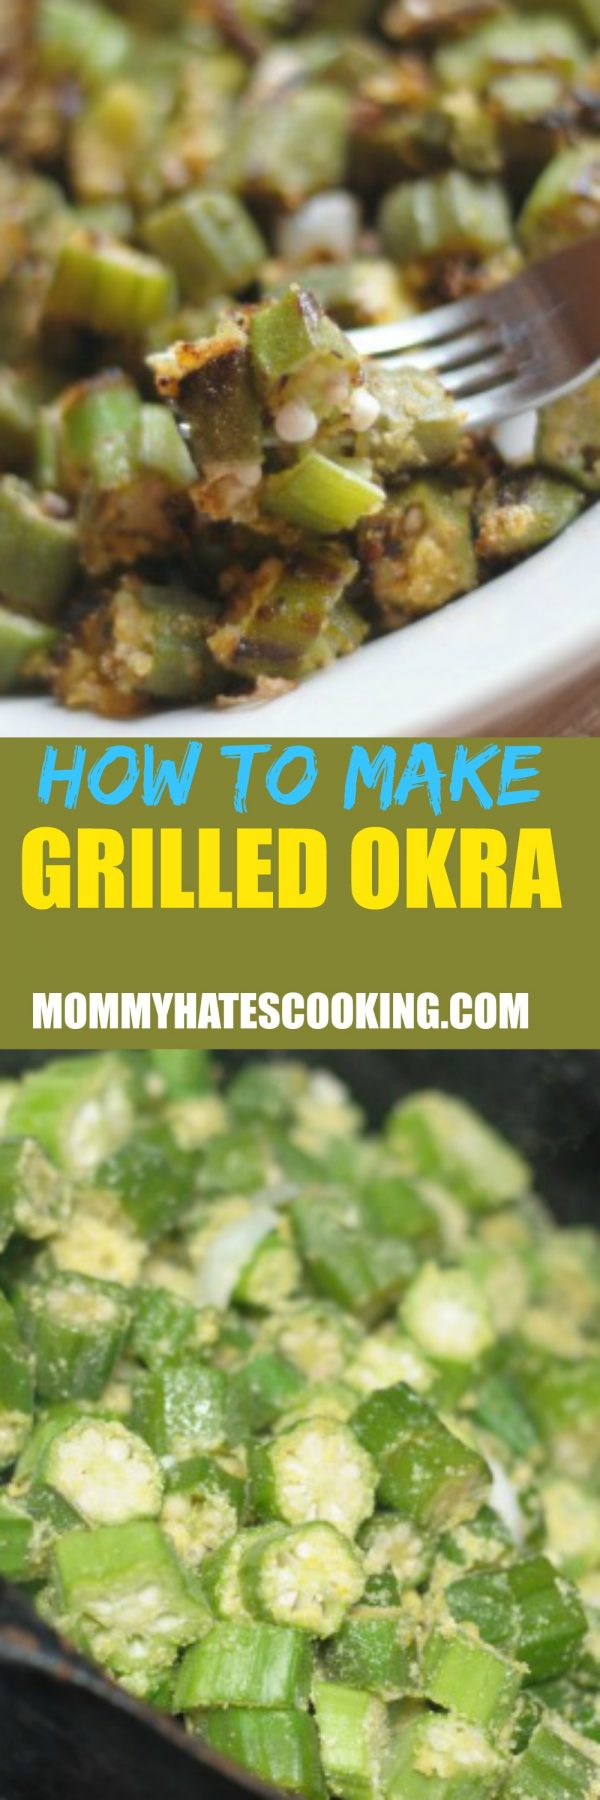 How to Make Grilled Okra